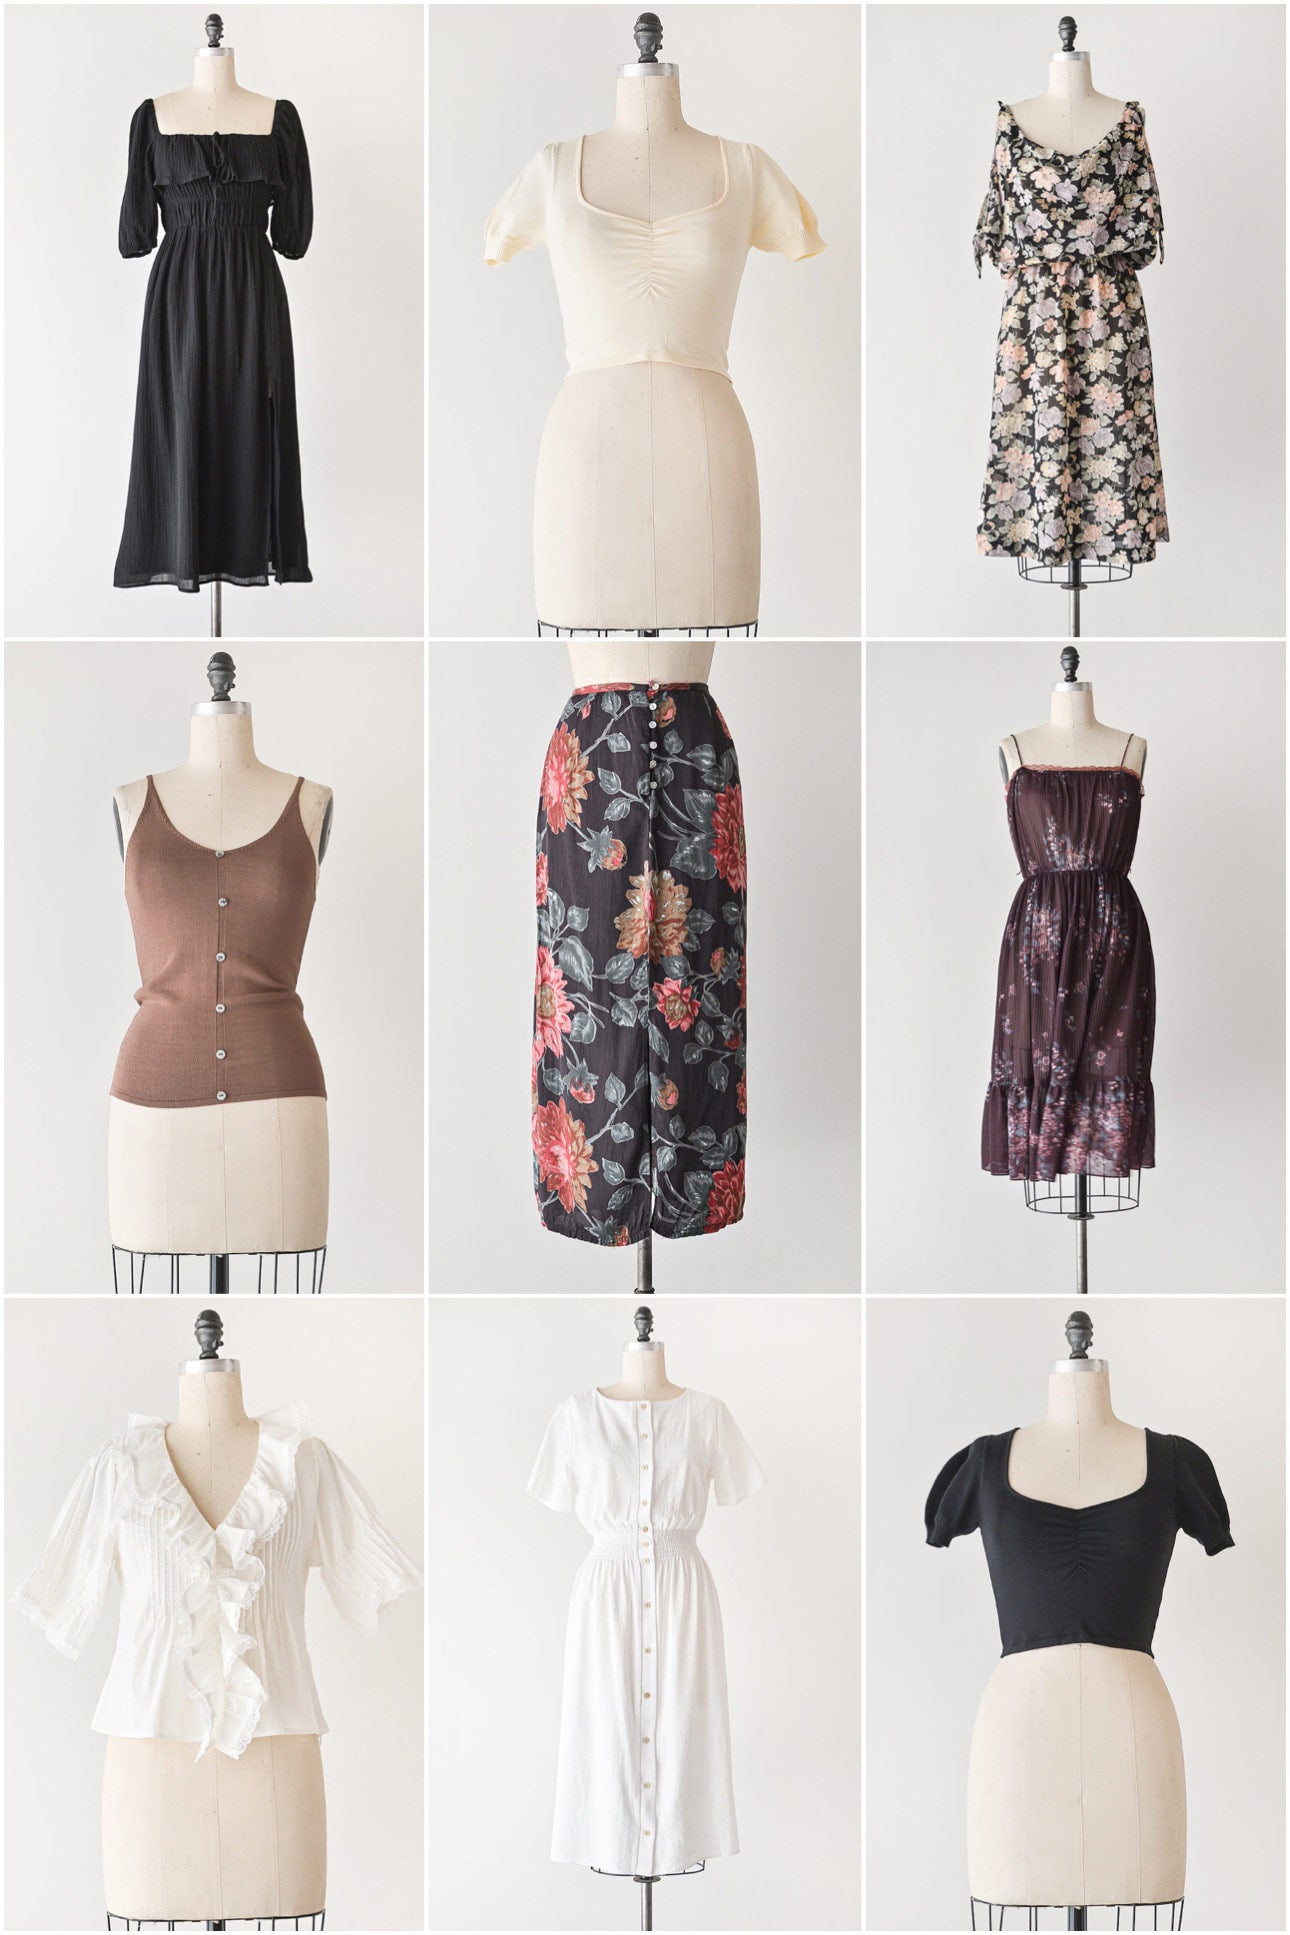 Feminine, Timeless, and Vintage Inspired / Adored Vintage Women's Clothing Boutique